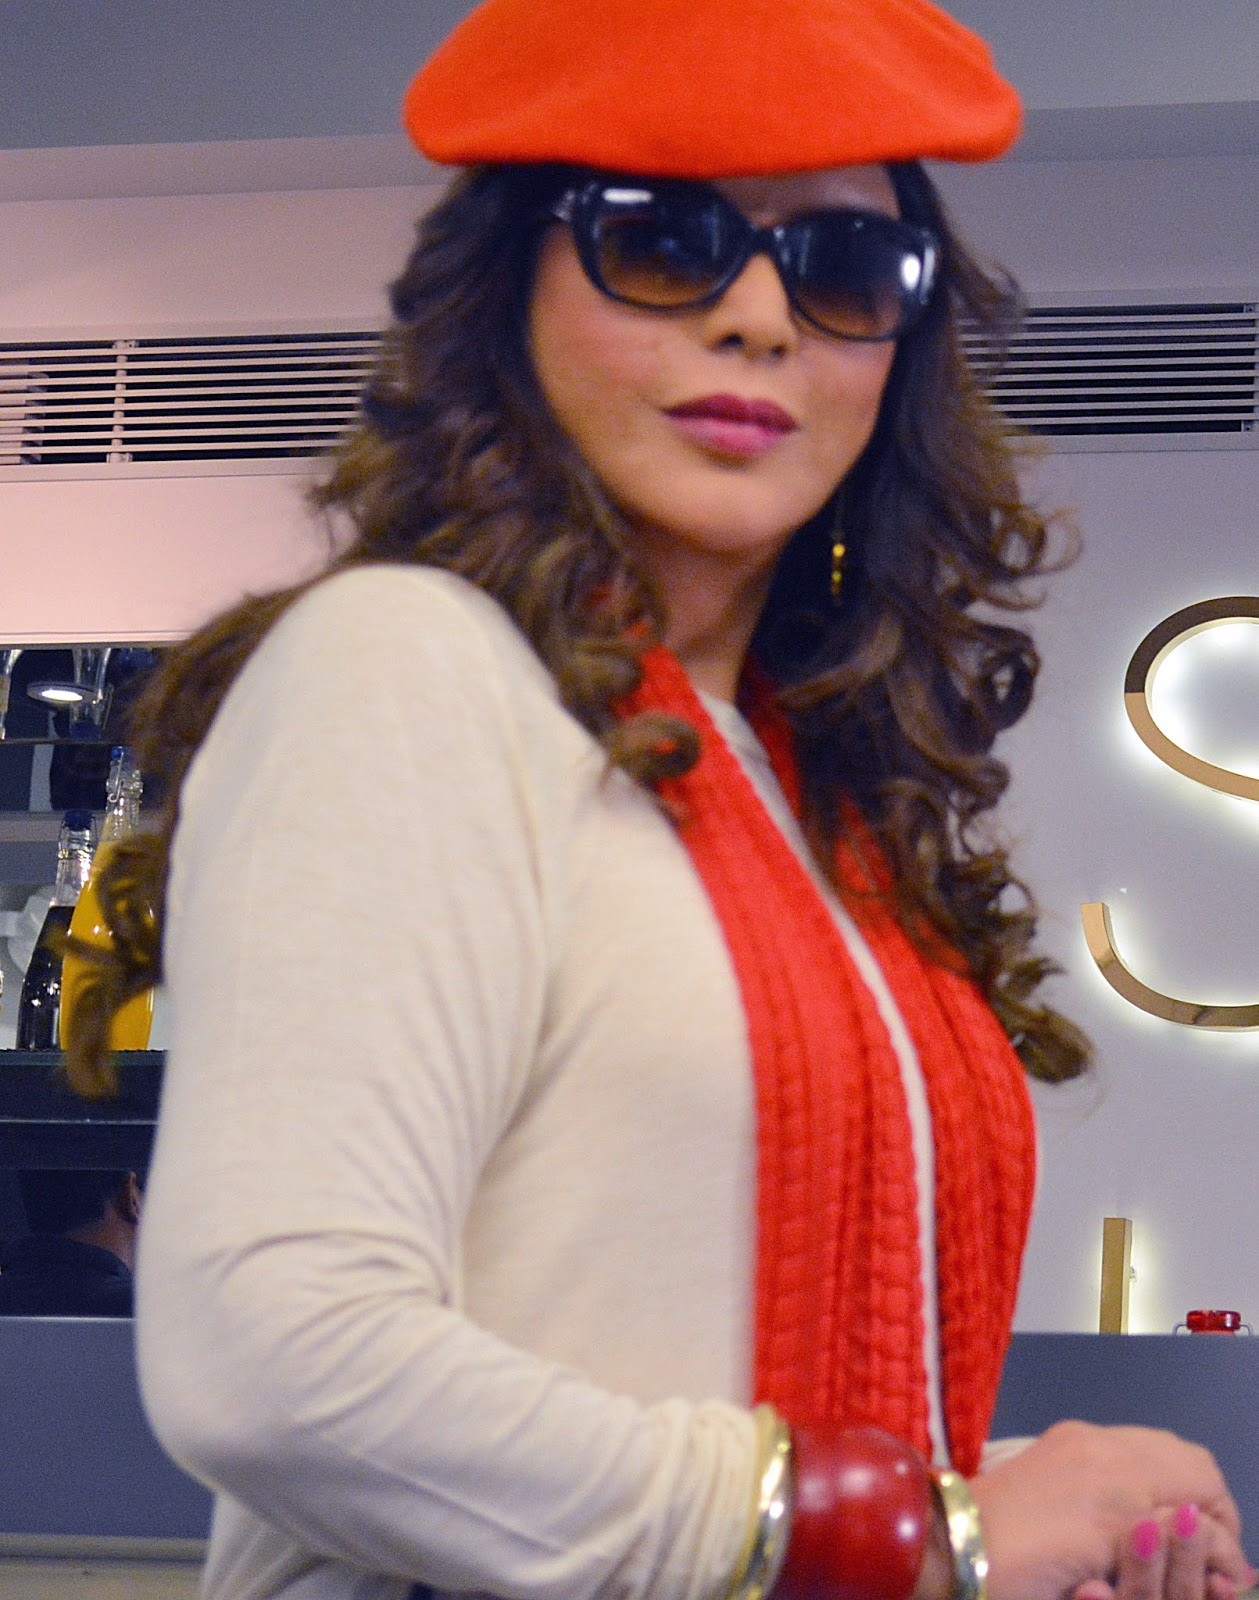 Zeenat aman debuts in super glam avatar on web called love life actor and writer of 11 international award winnerdunno y na jaanekyun now known as kapil kaustubh sharma has written the script and he will be debuting in thecheapjerseys Images